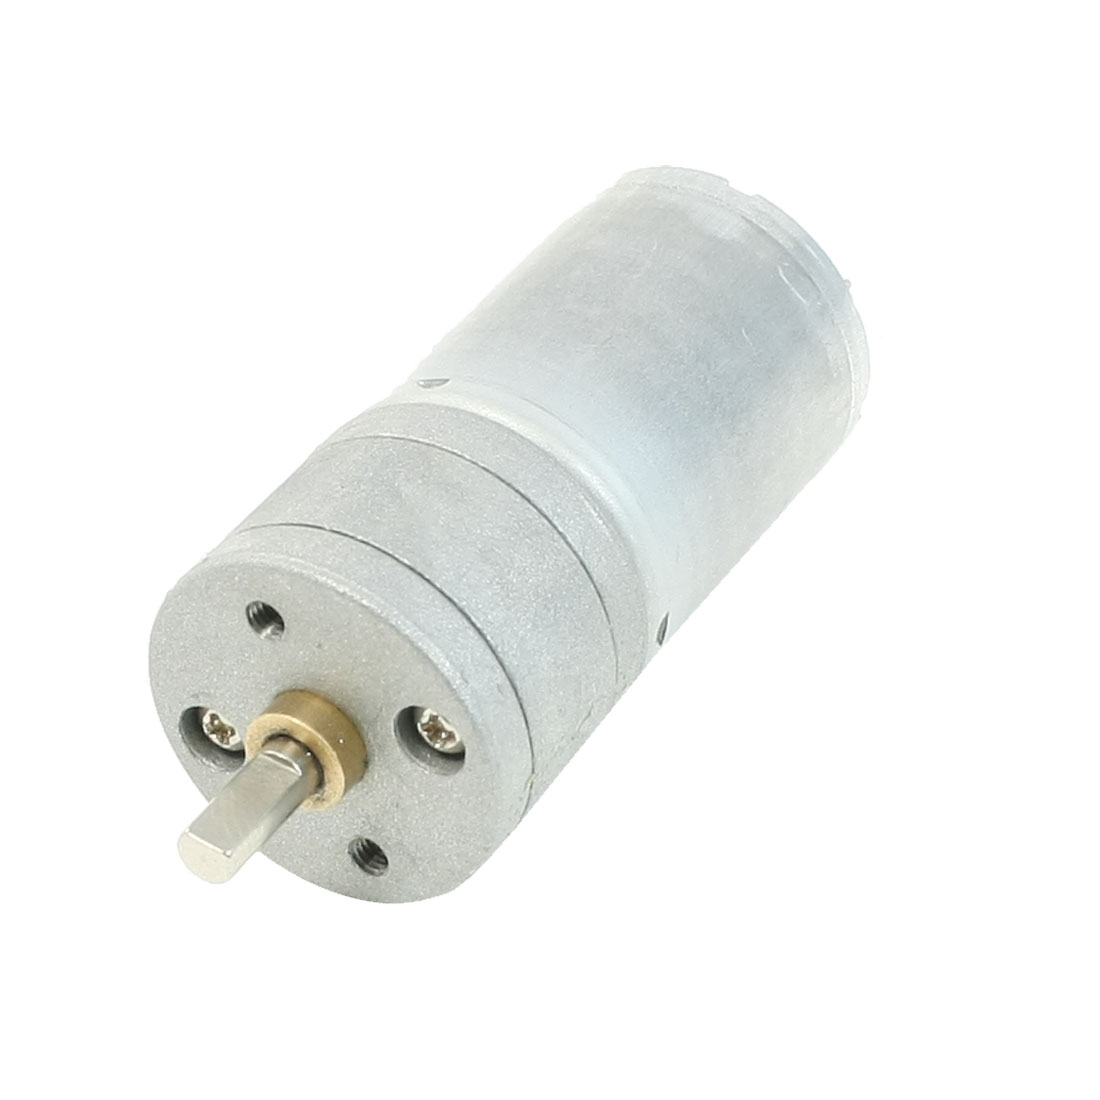 1000RPM-DC-12V-High-Torque-Gear-Box-Electric-Magnetic-Speed-Reduce-Motor